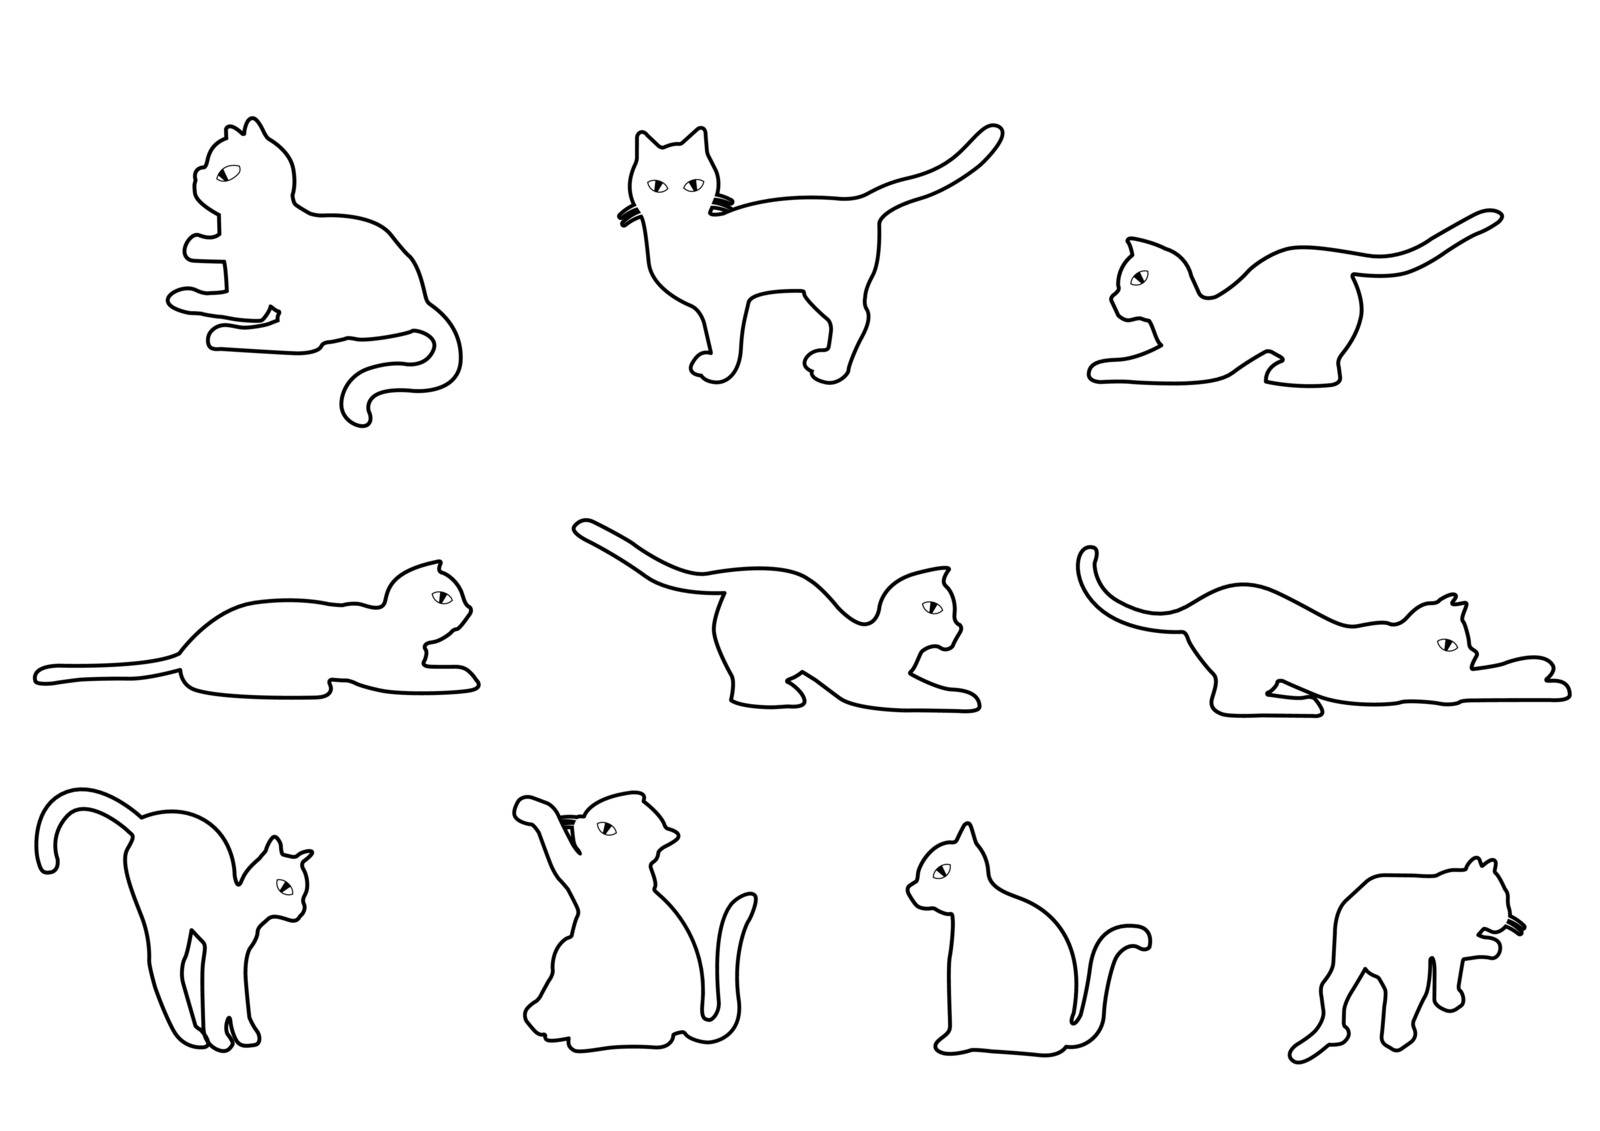 Cat on a white background vector illustration. Illustration of Cartoon Cat. Outline illustration for a coloring book. All in a single layer. vector illustration